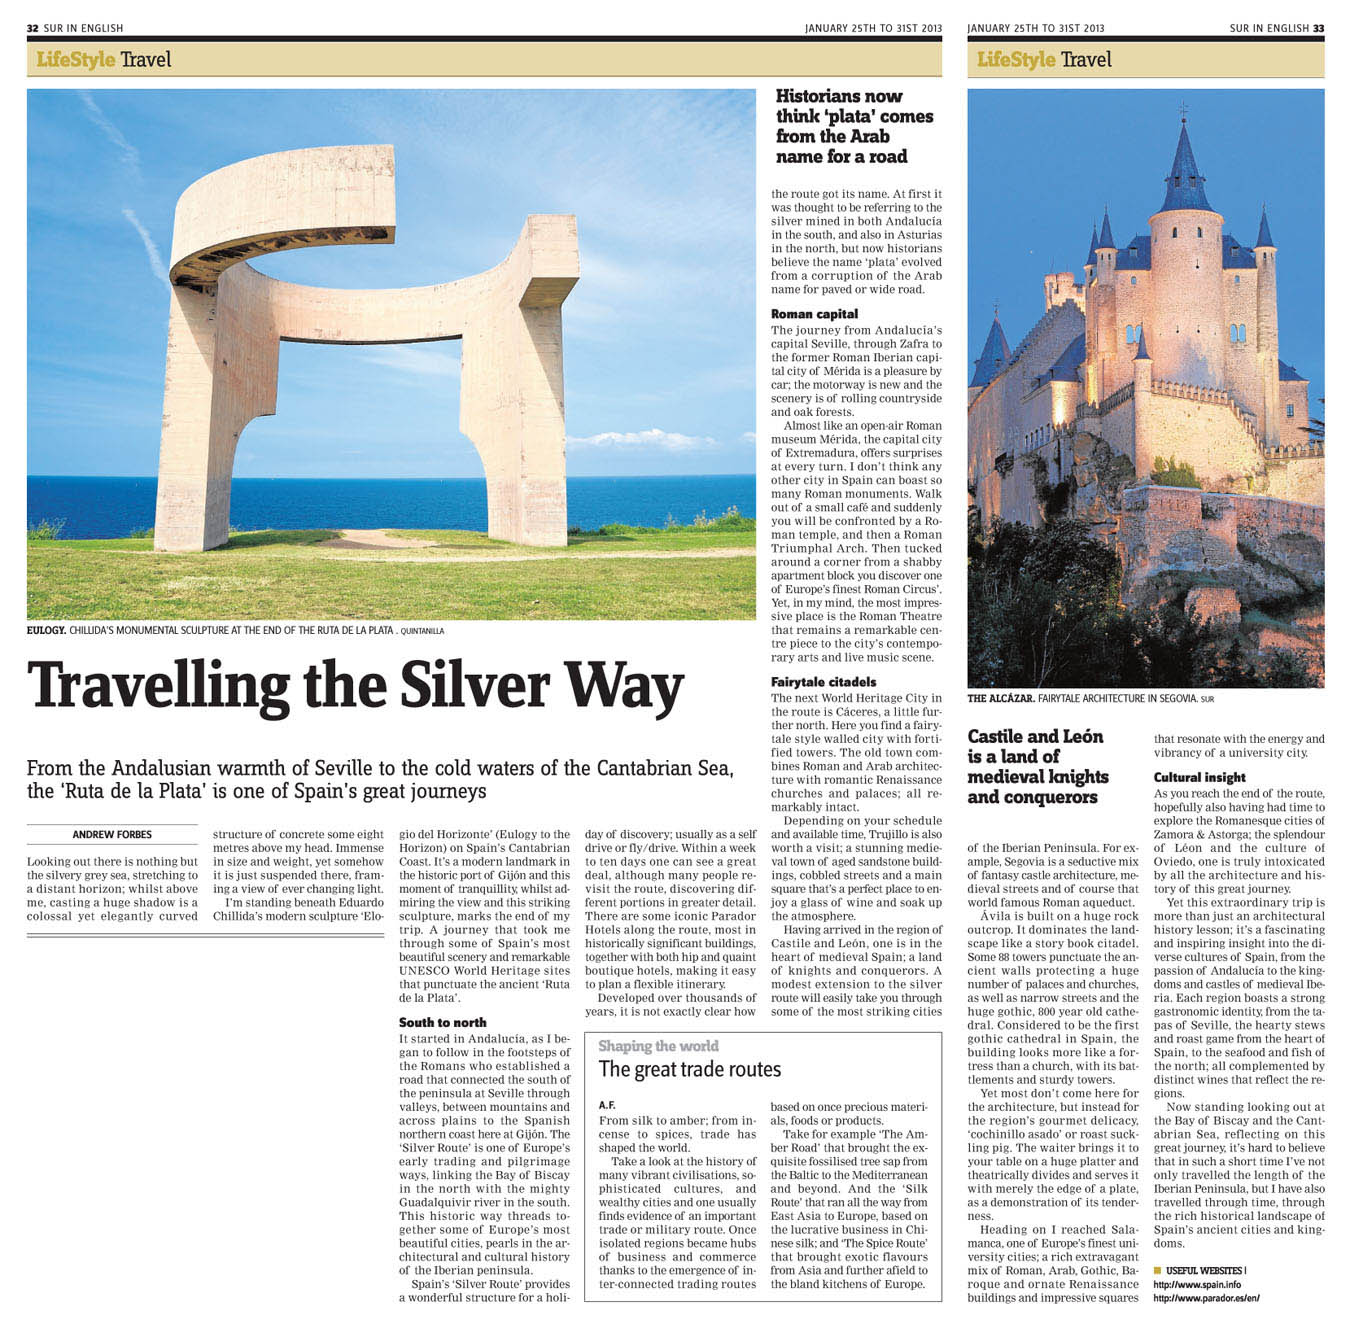 Spain's Silver Route Travel Andrew Forbes Sur_Travel_25.01.2013